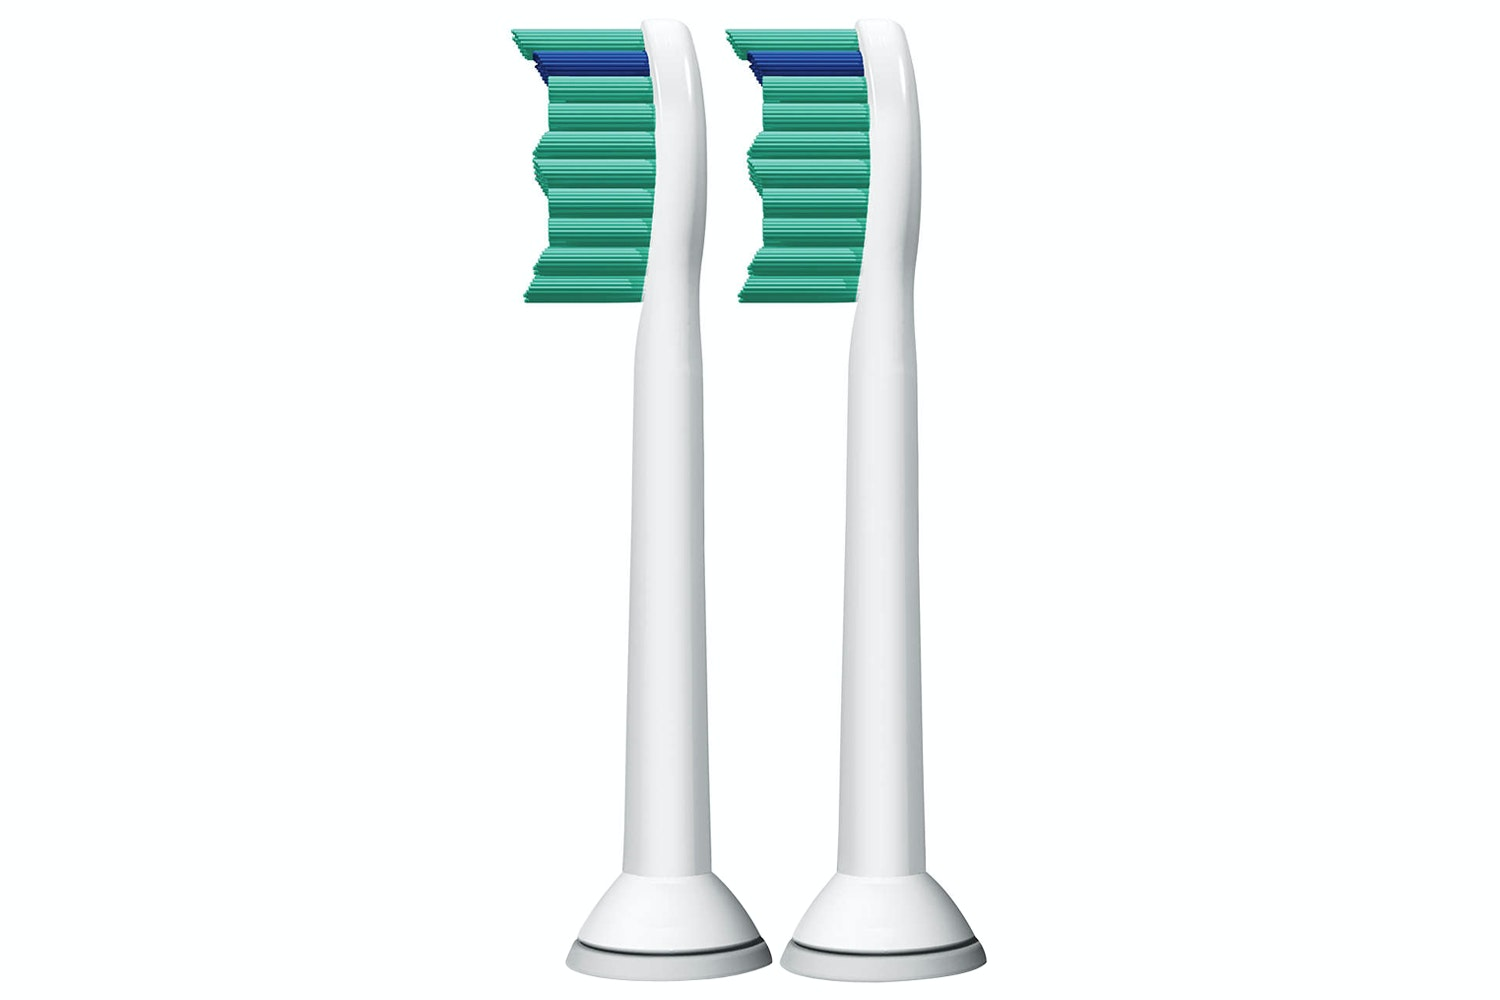 Philips Sonicare ProResults Toothbrush Heads